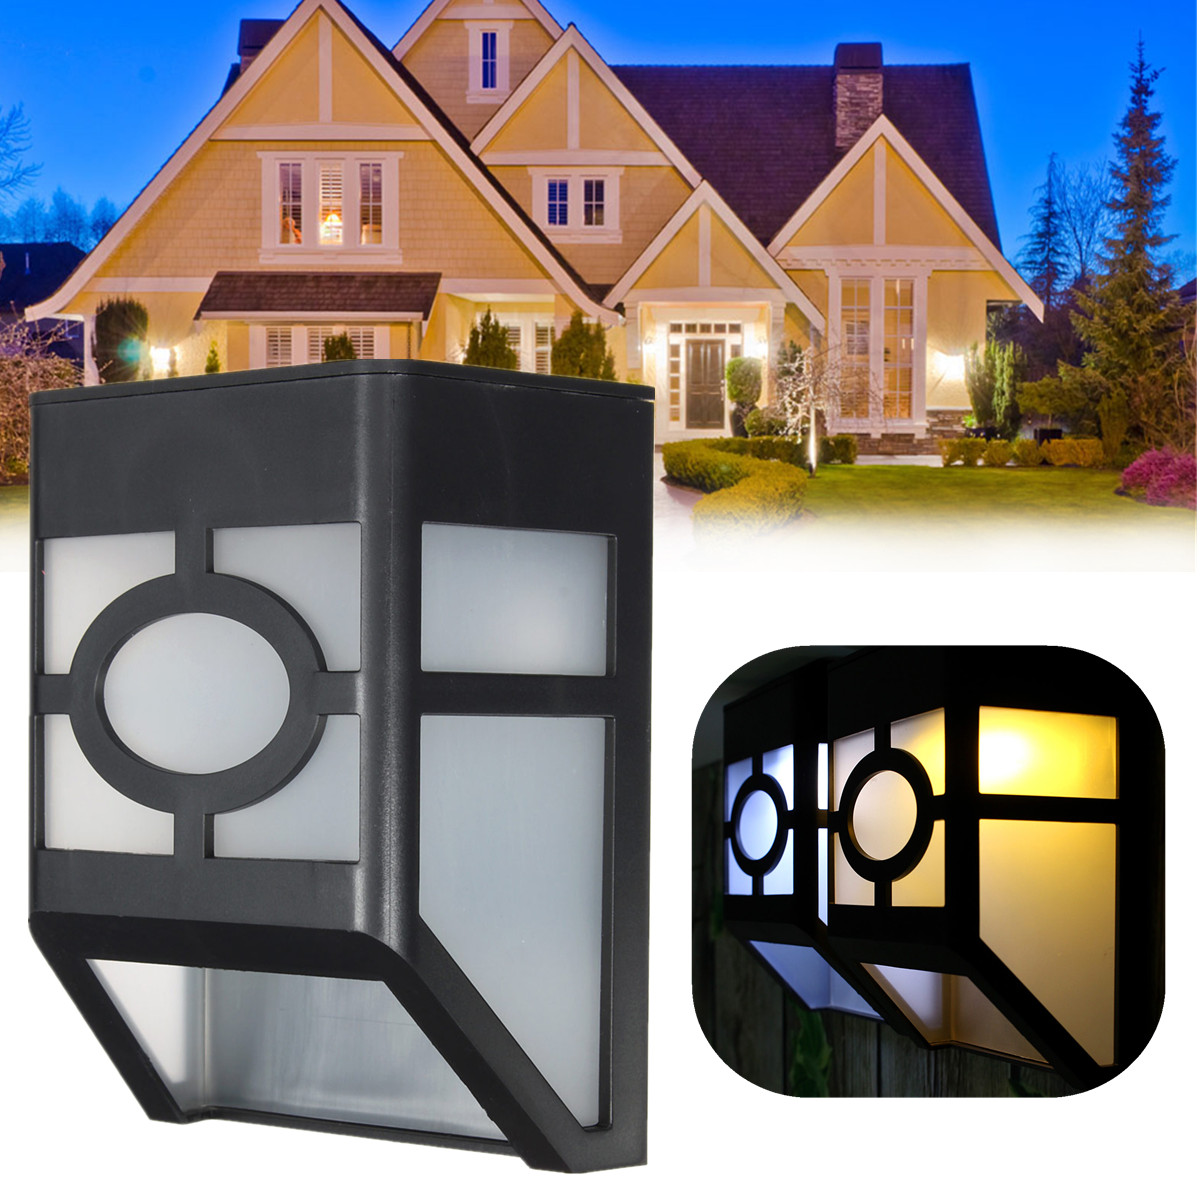 solaire 3 led lampe murale capture mouvement d tecteur. Black Bedroom Furniture Sets. Home Design Ideas